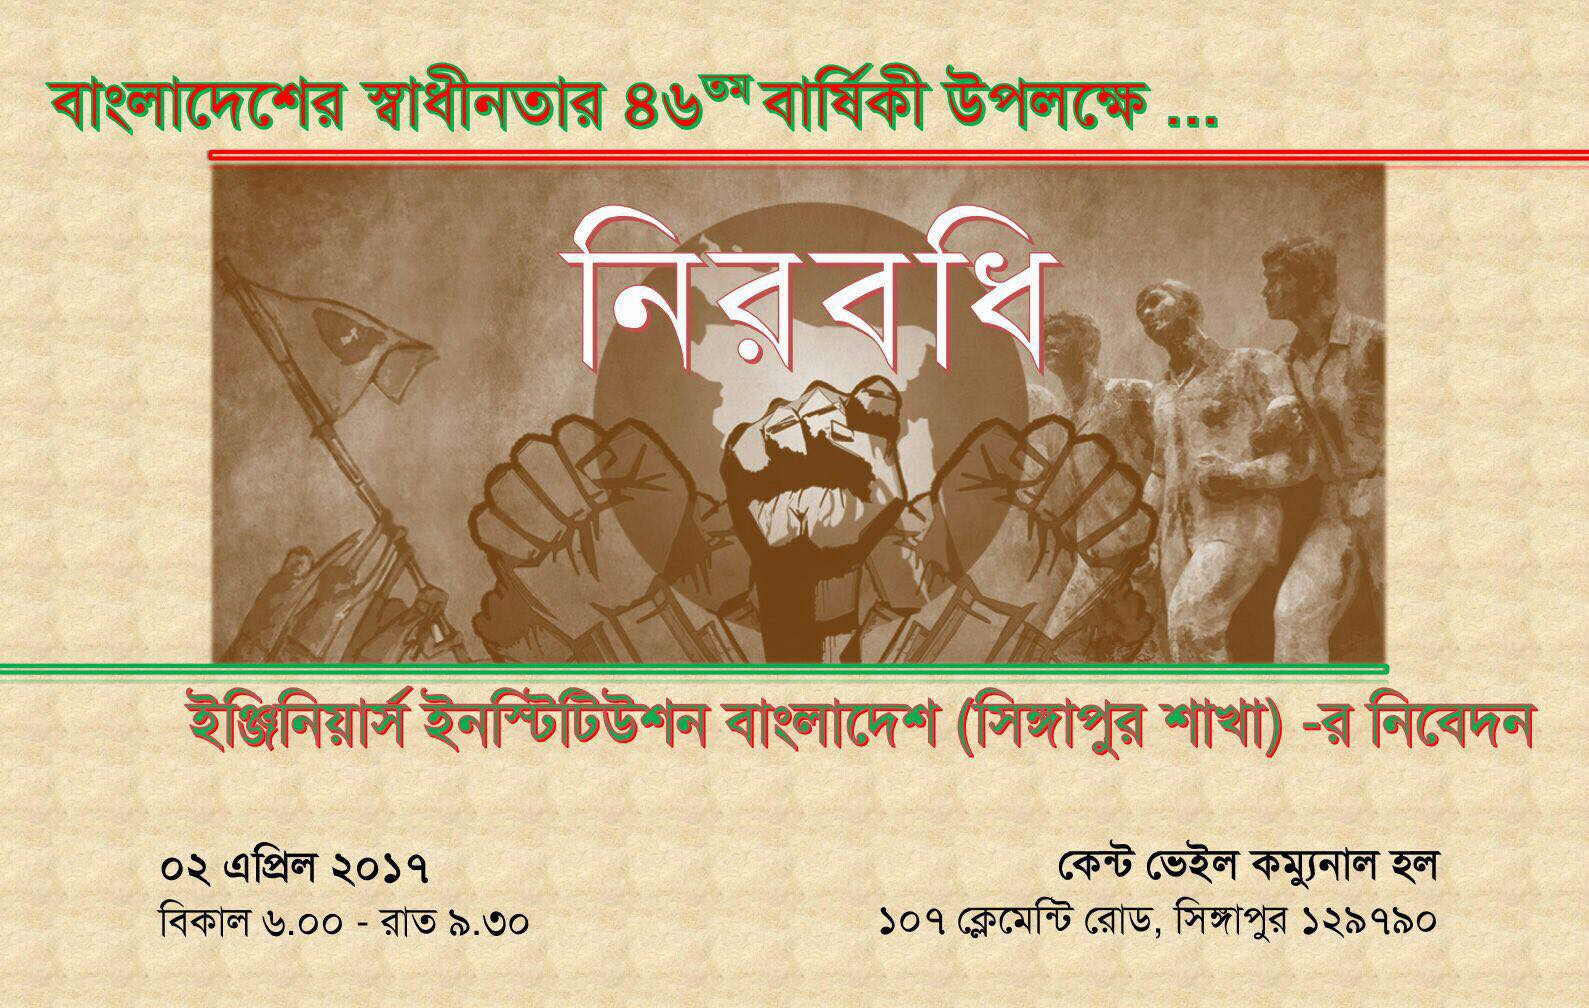 46th Anniversary of Independence of Bang